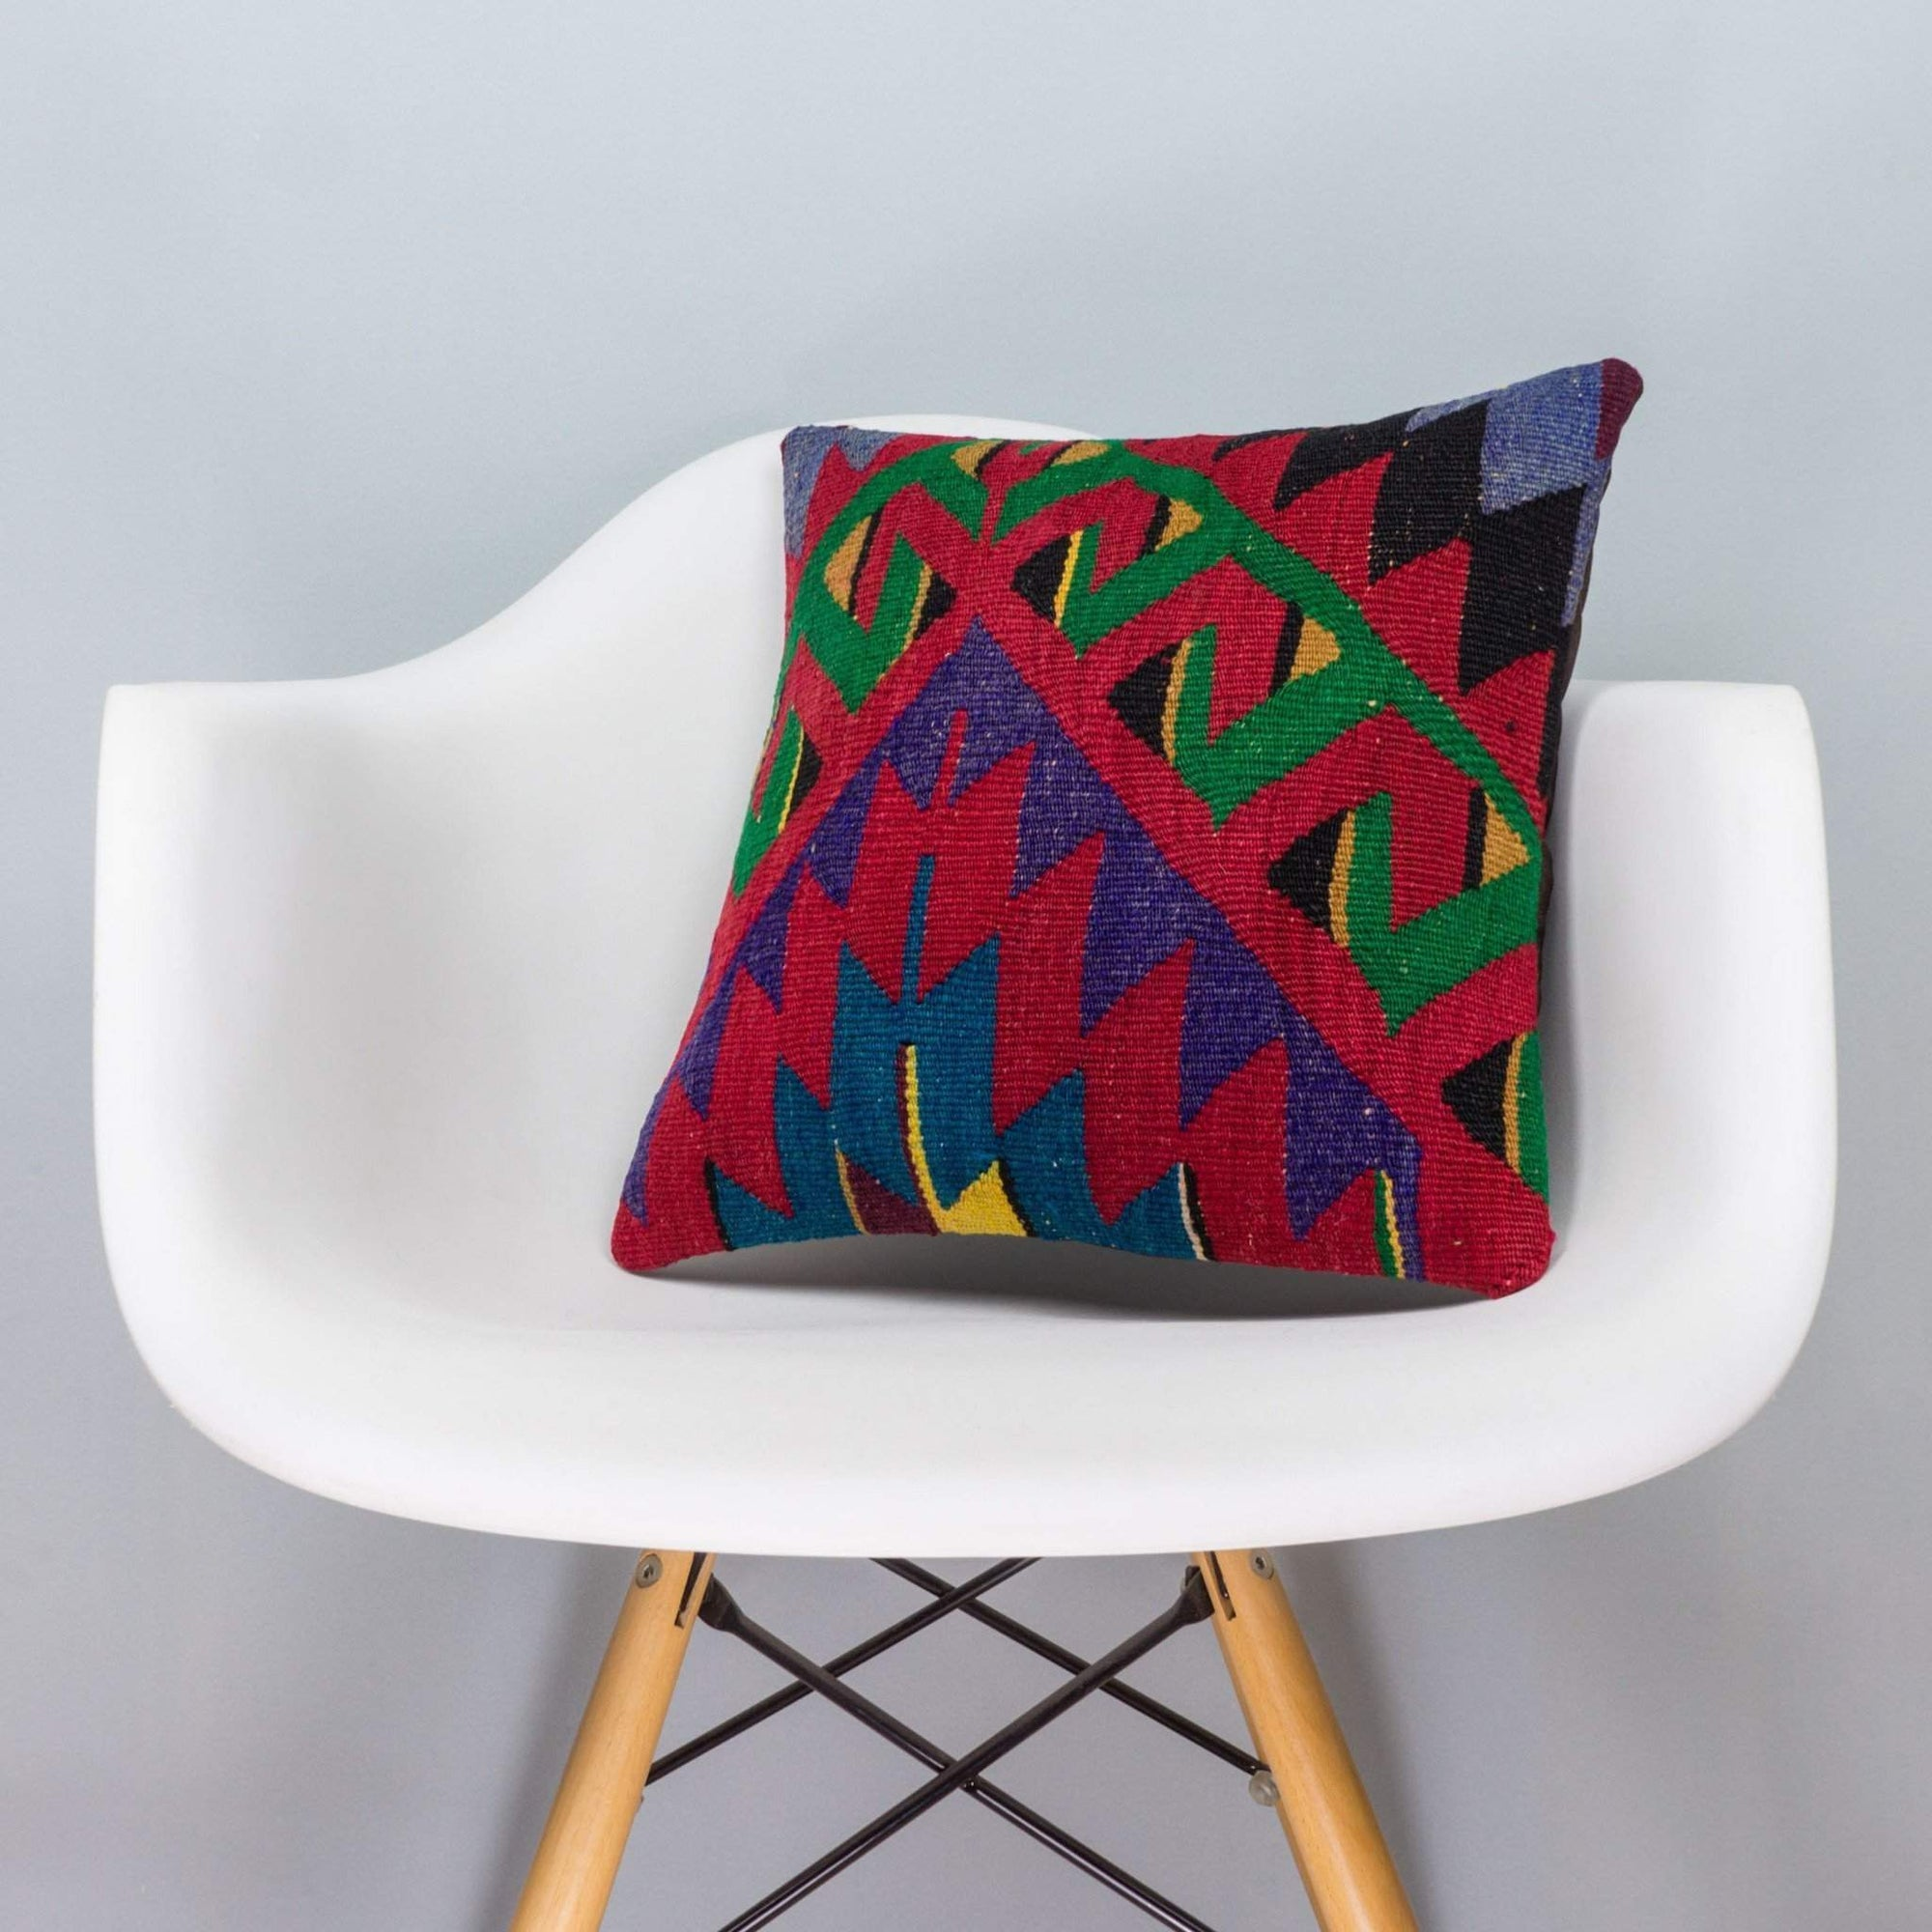 Chevron Multi Color Kilim Pillow Cover 16x16 3295 - kilimpillowstore  - 1